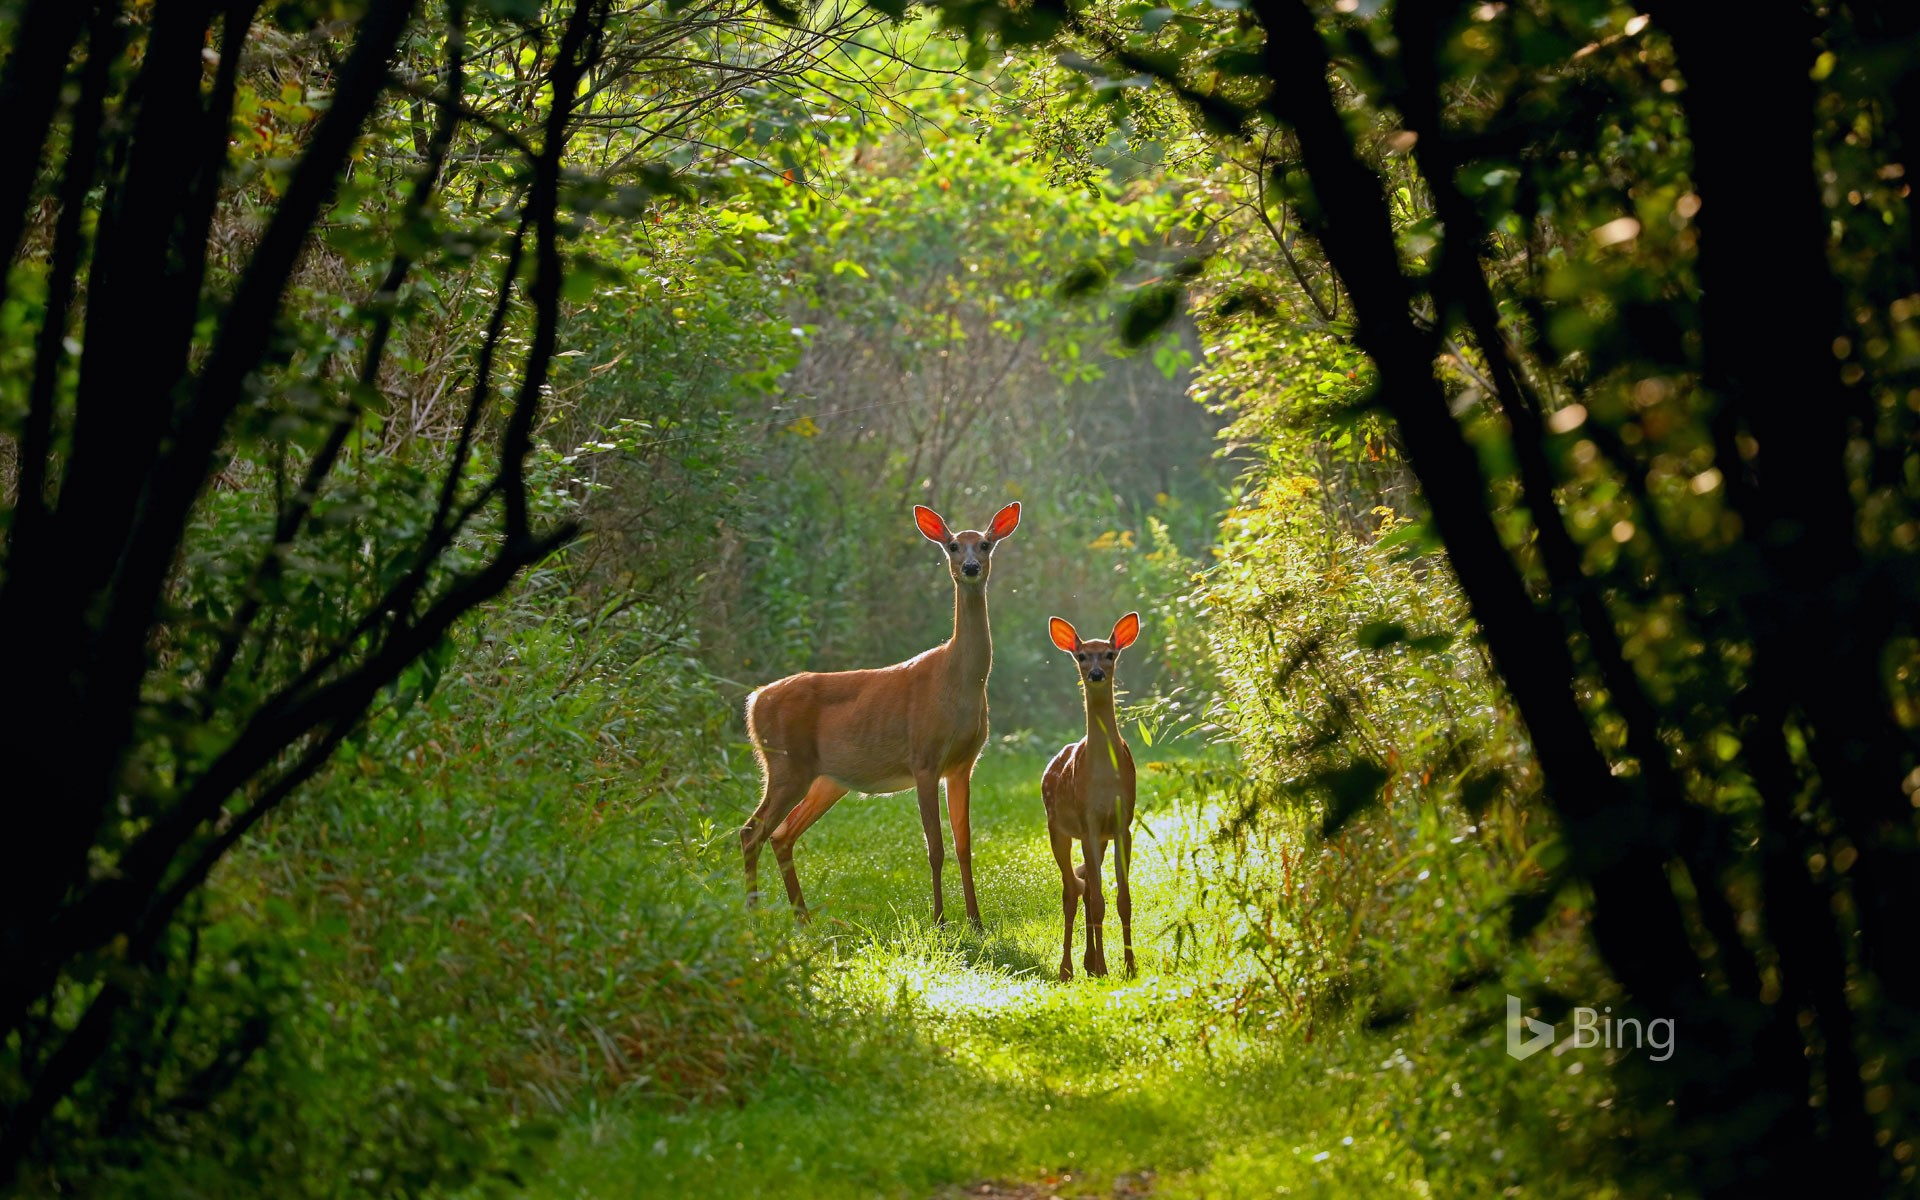 White tailed deer : Into the woods